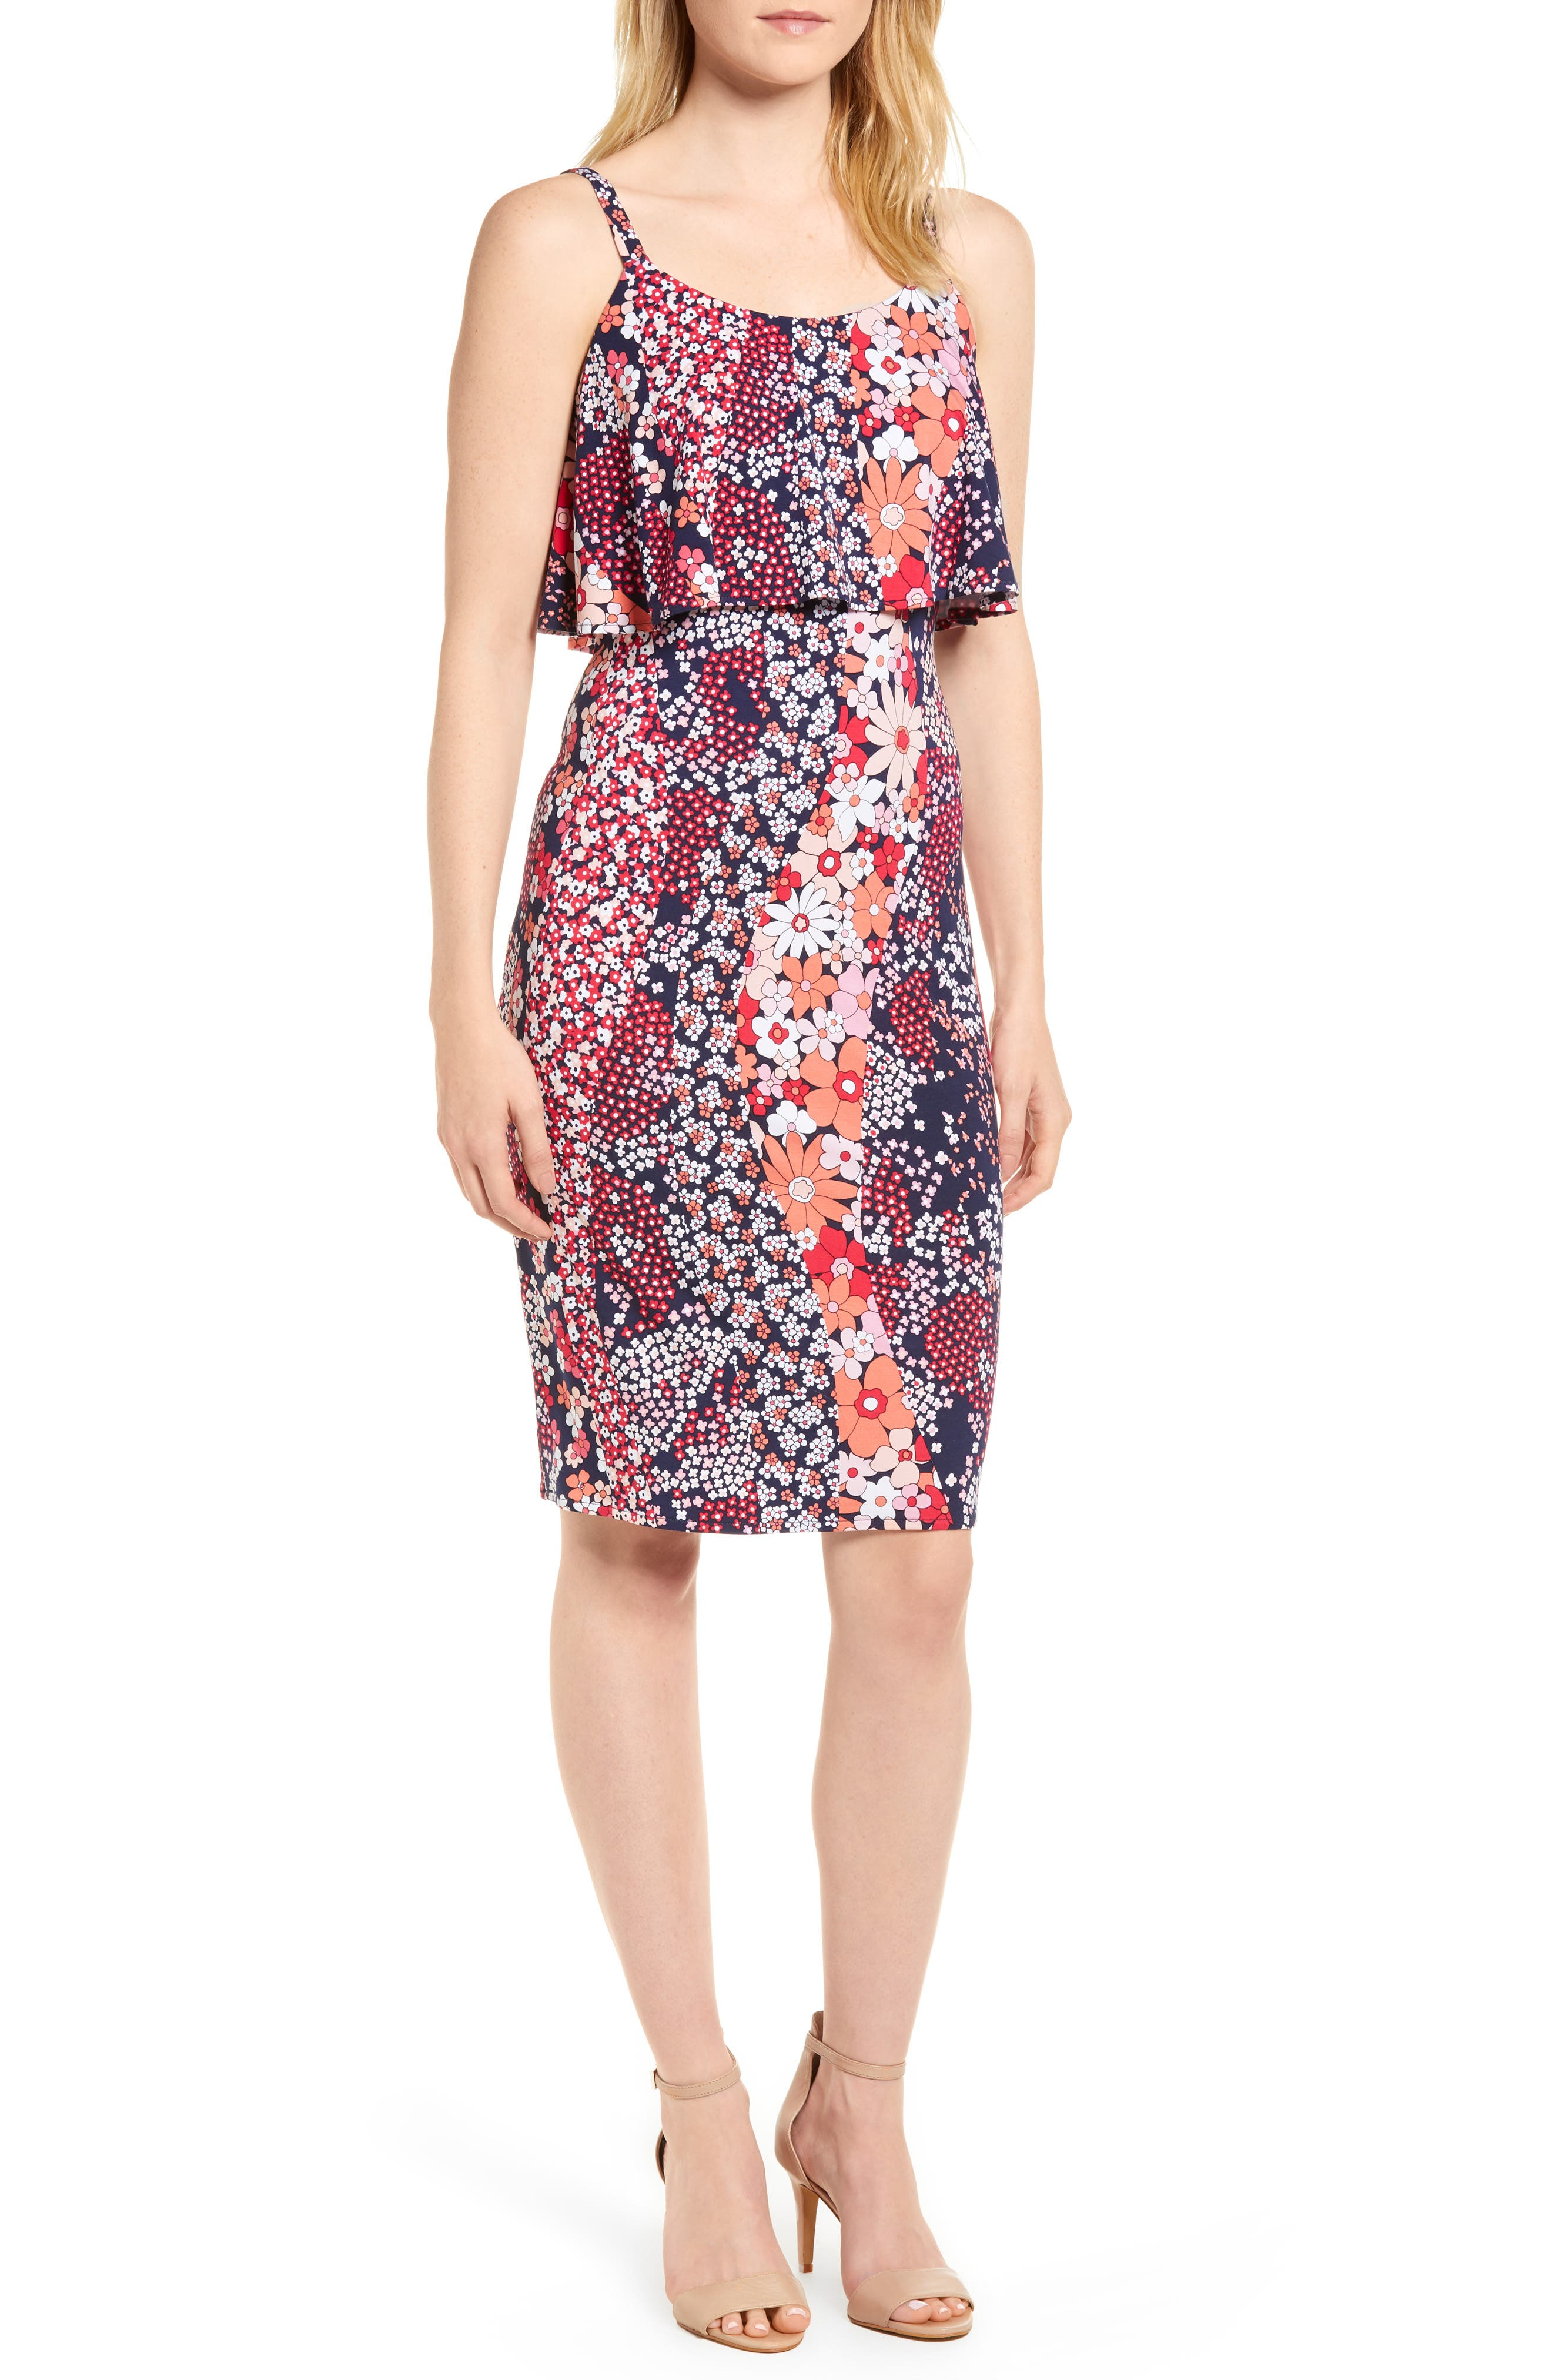 Print Floral Dress,                         Main,                         color, True Navy/ Bright Blush